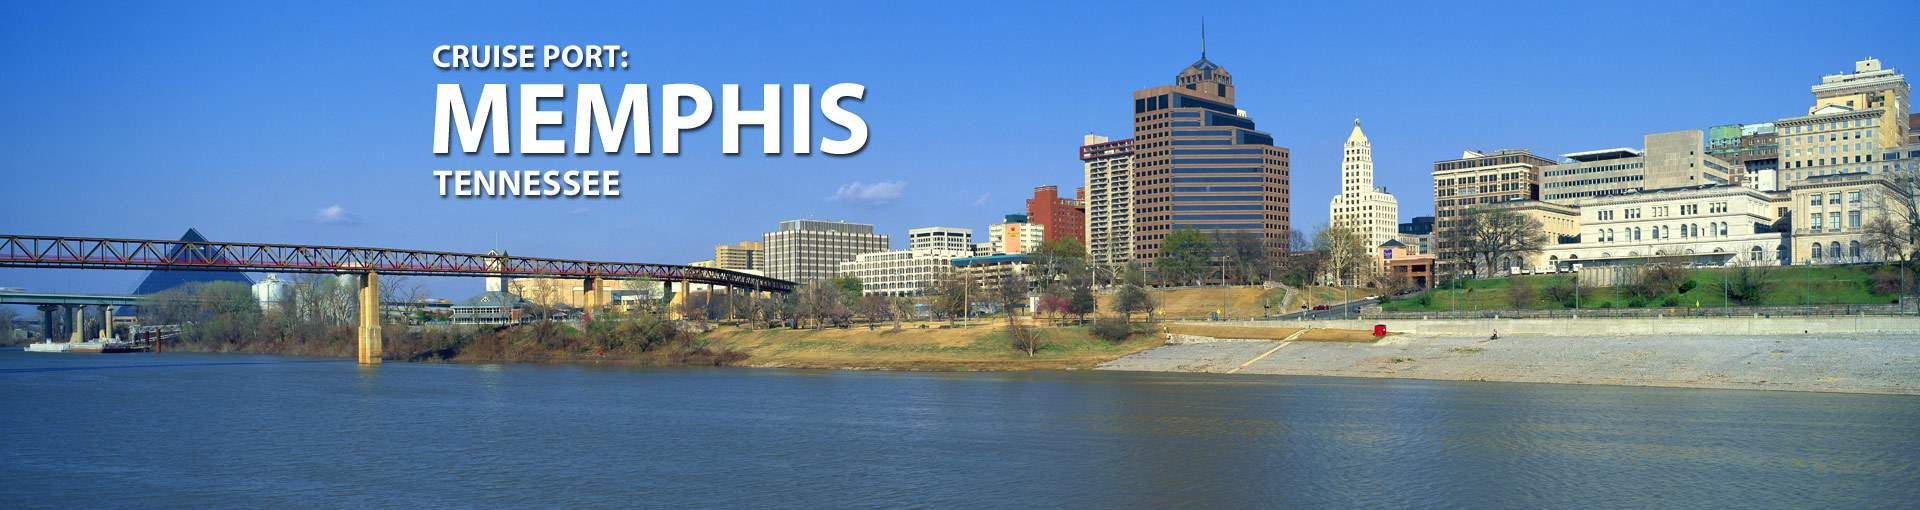 Cruise Port: Memphis, Tennessee